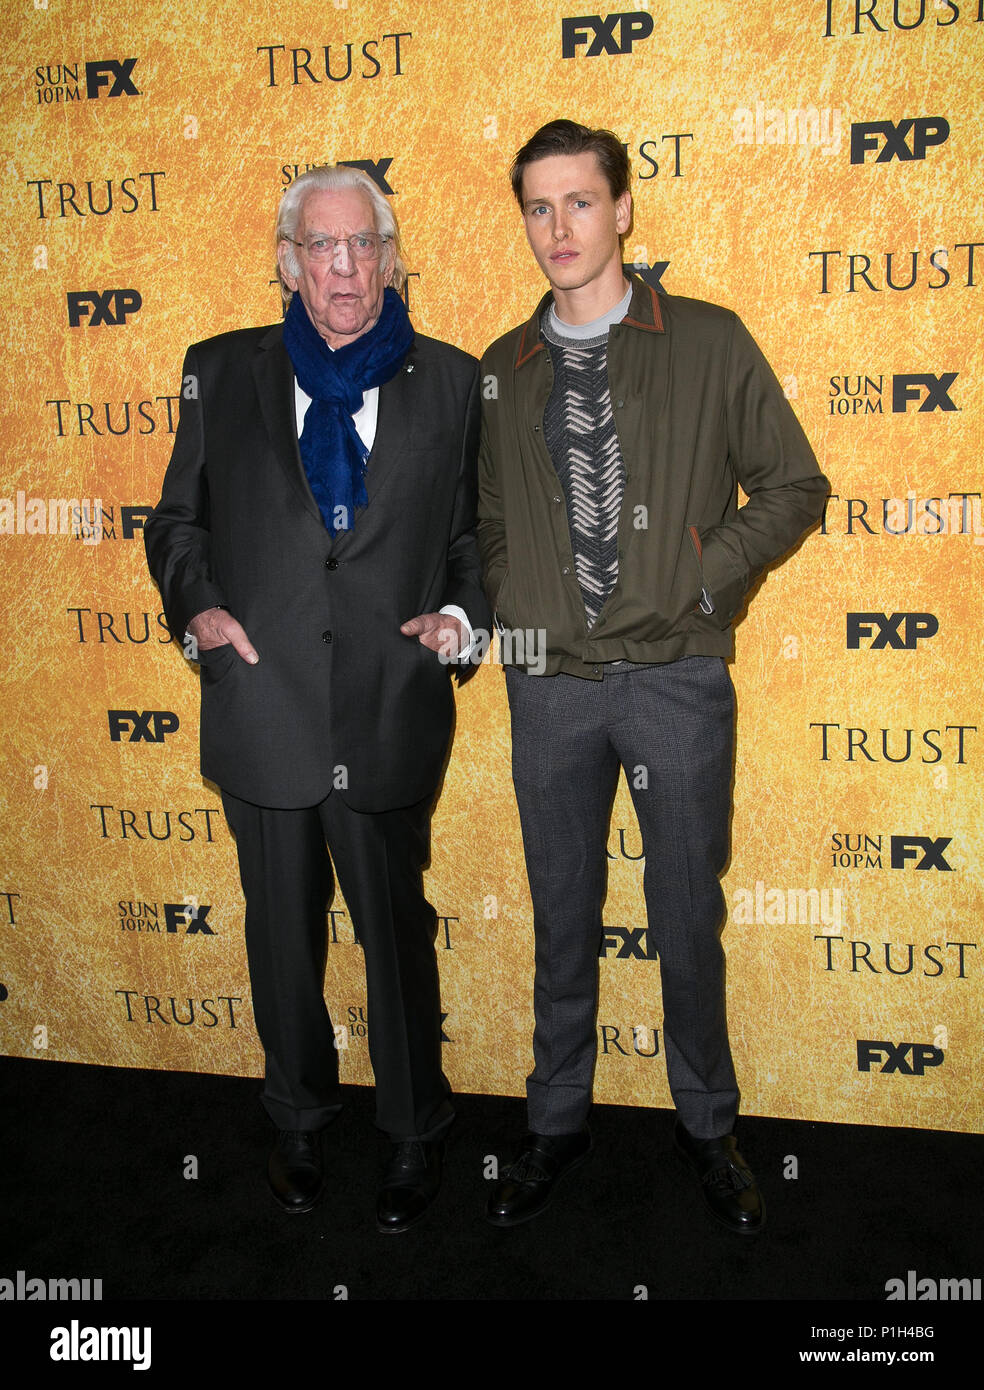 """Celebrities attend FYC Red Carpet Event for """"Trust,' at the Saban Media Center at the Television Academy.  Featuring: Donald Sutherland, Harris Dickinson Where: Los Angeles, California, United States When: 11 May 2018 Credit: Brian To/WENN.com - Stock Image"""